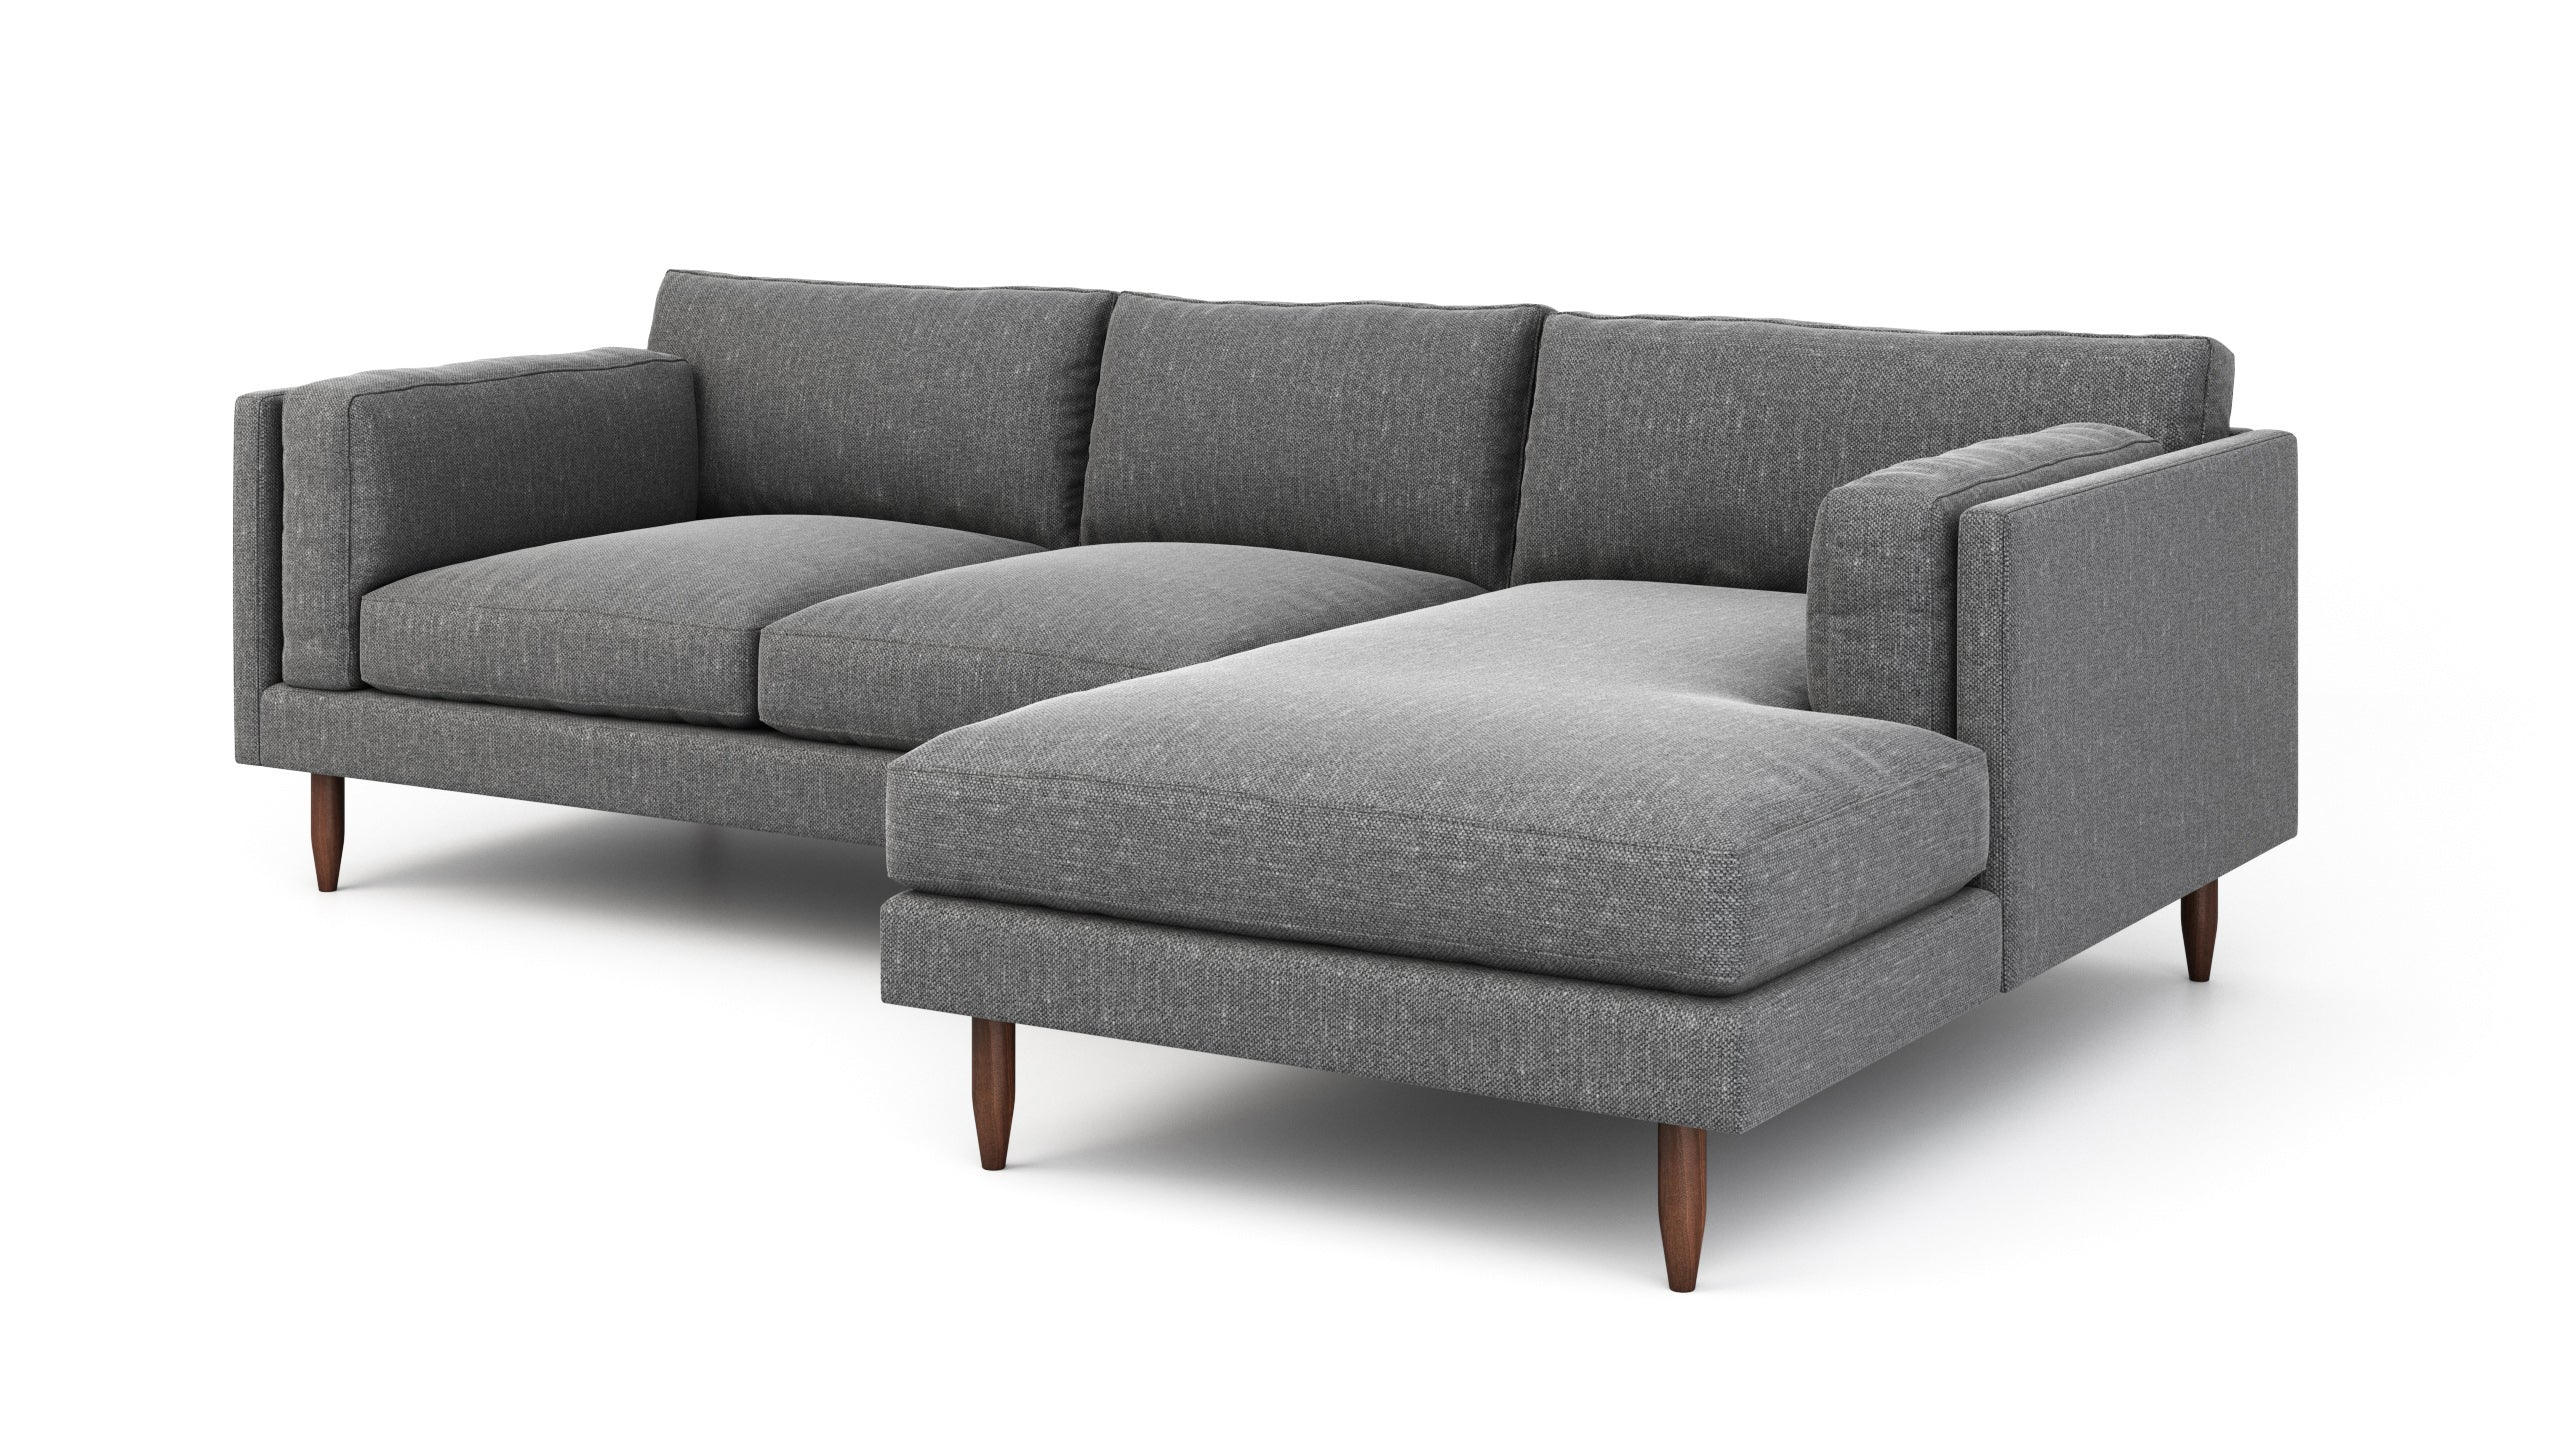 Skinny Fat Sofa With Chaise